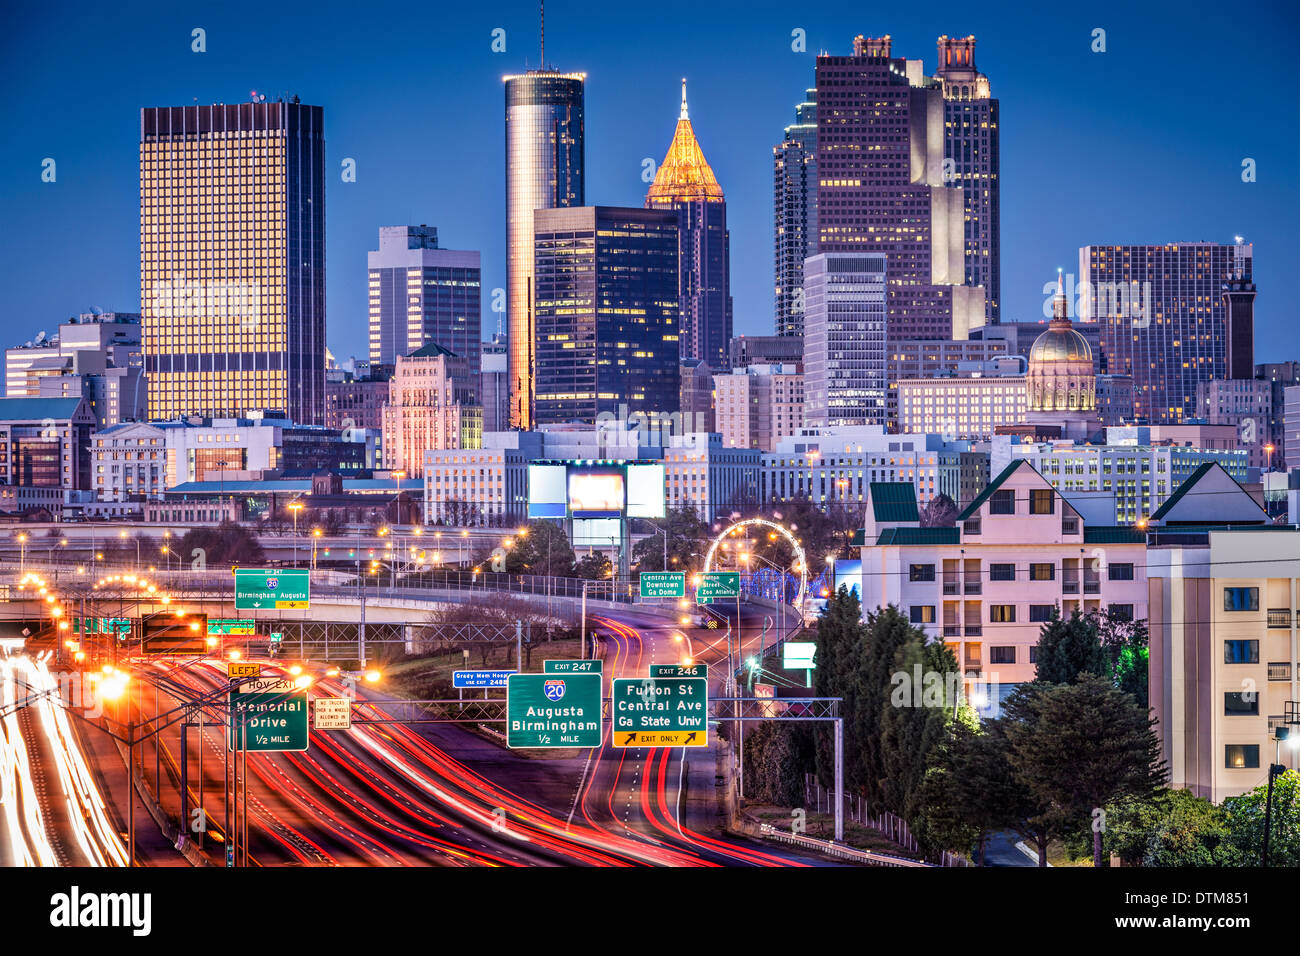 atlanta georgia usa twilight rush hour stock photo 66828301 alamy. Black Bedroom Furniture Sets. Home Design Ideas